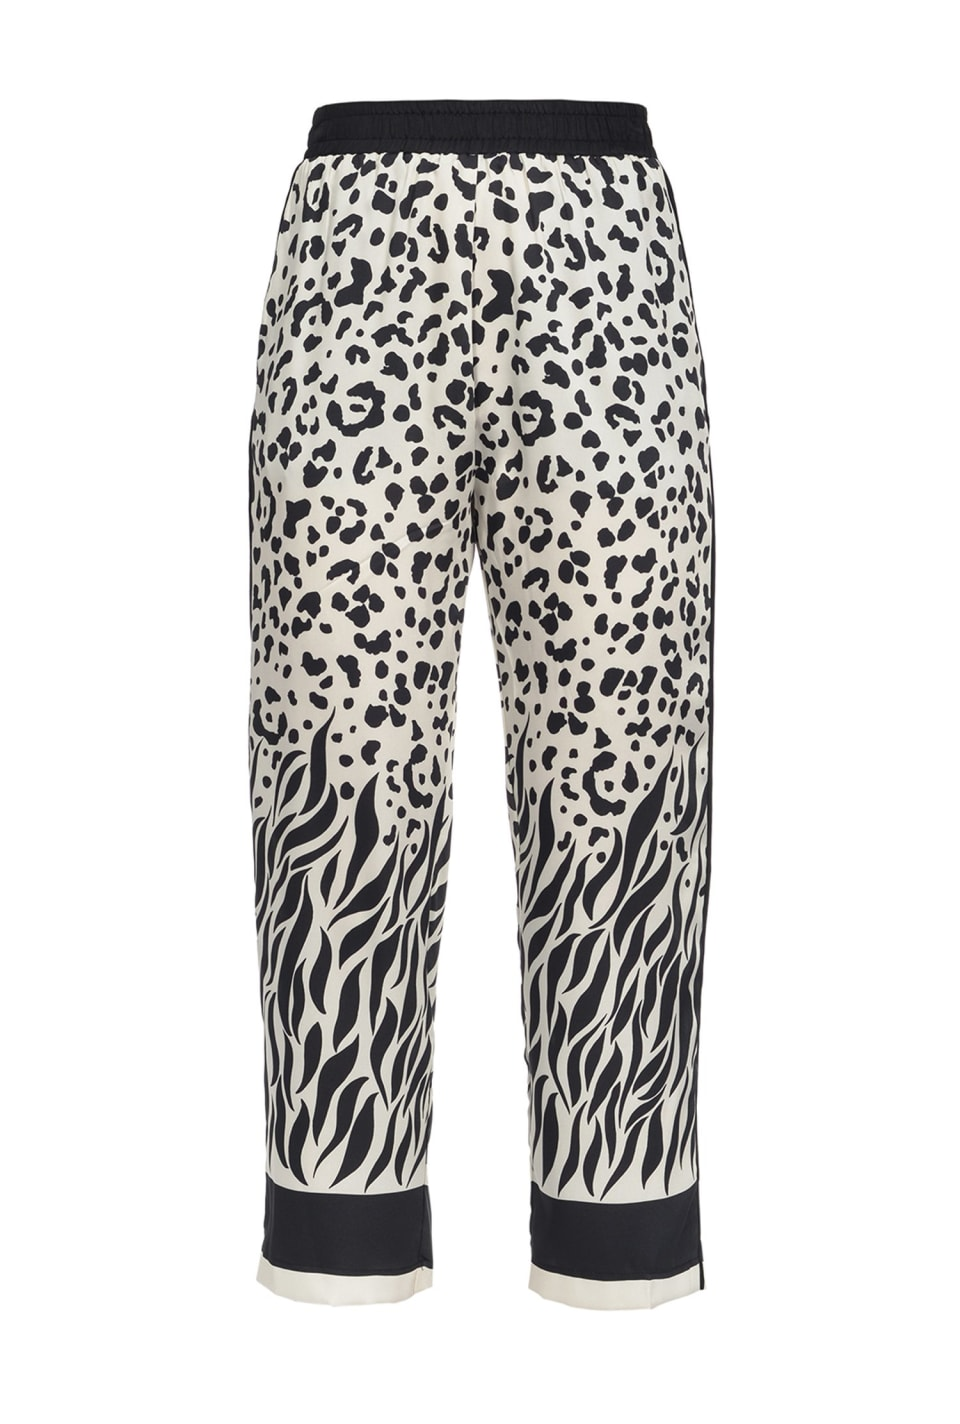 Trousers with mixed faded animal pattern